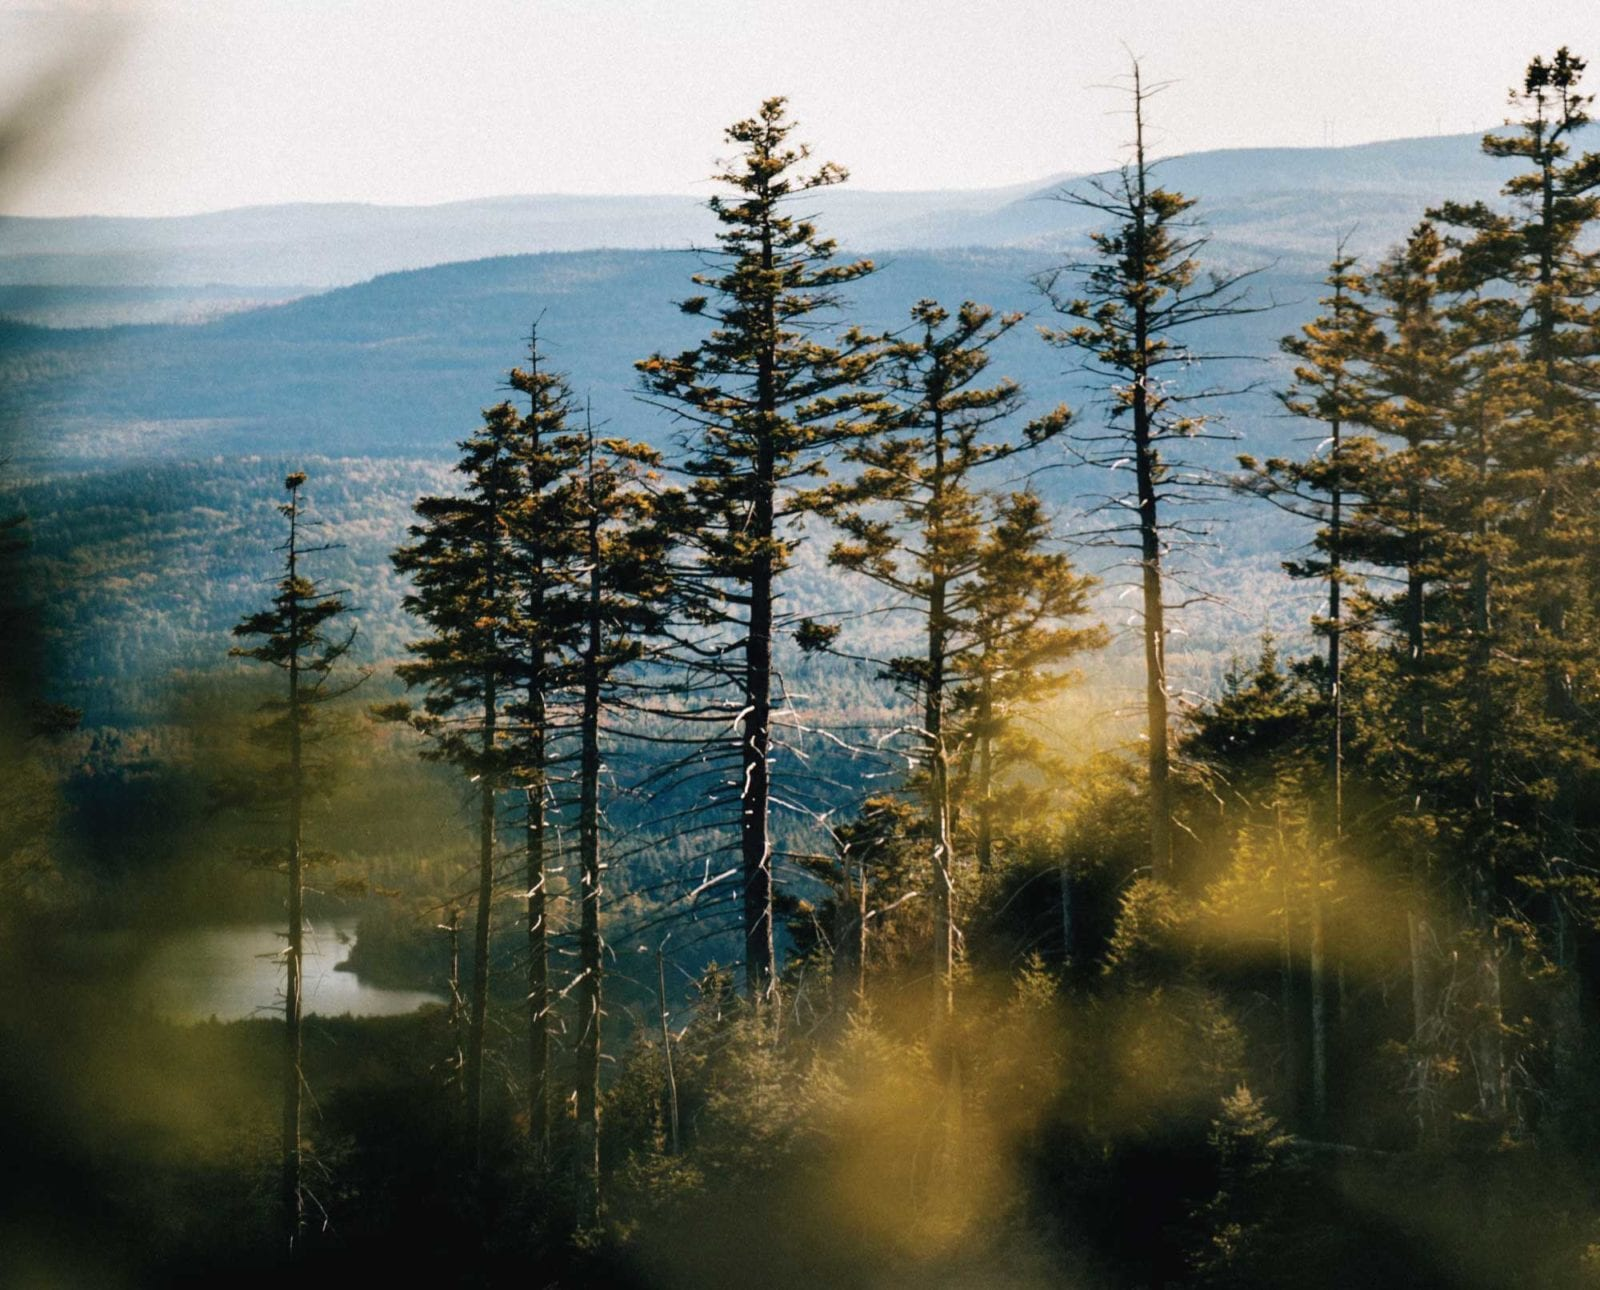 Image of large unmapped area of the United States wilderness